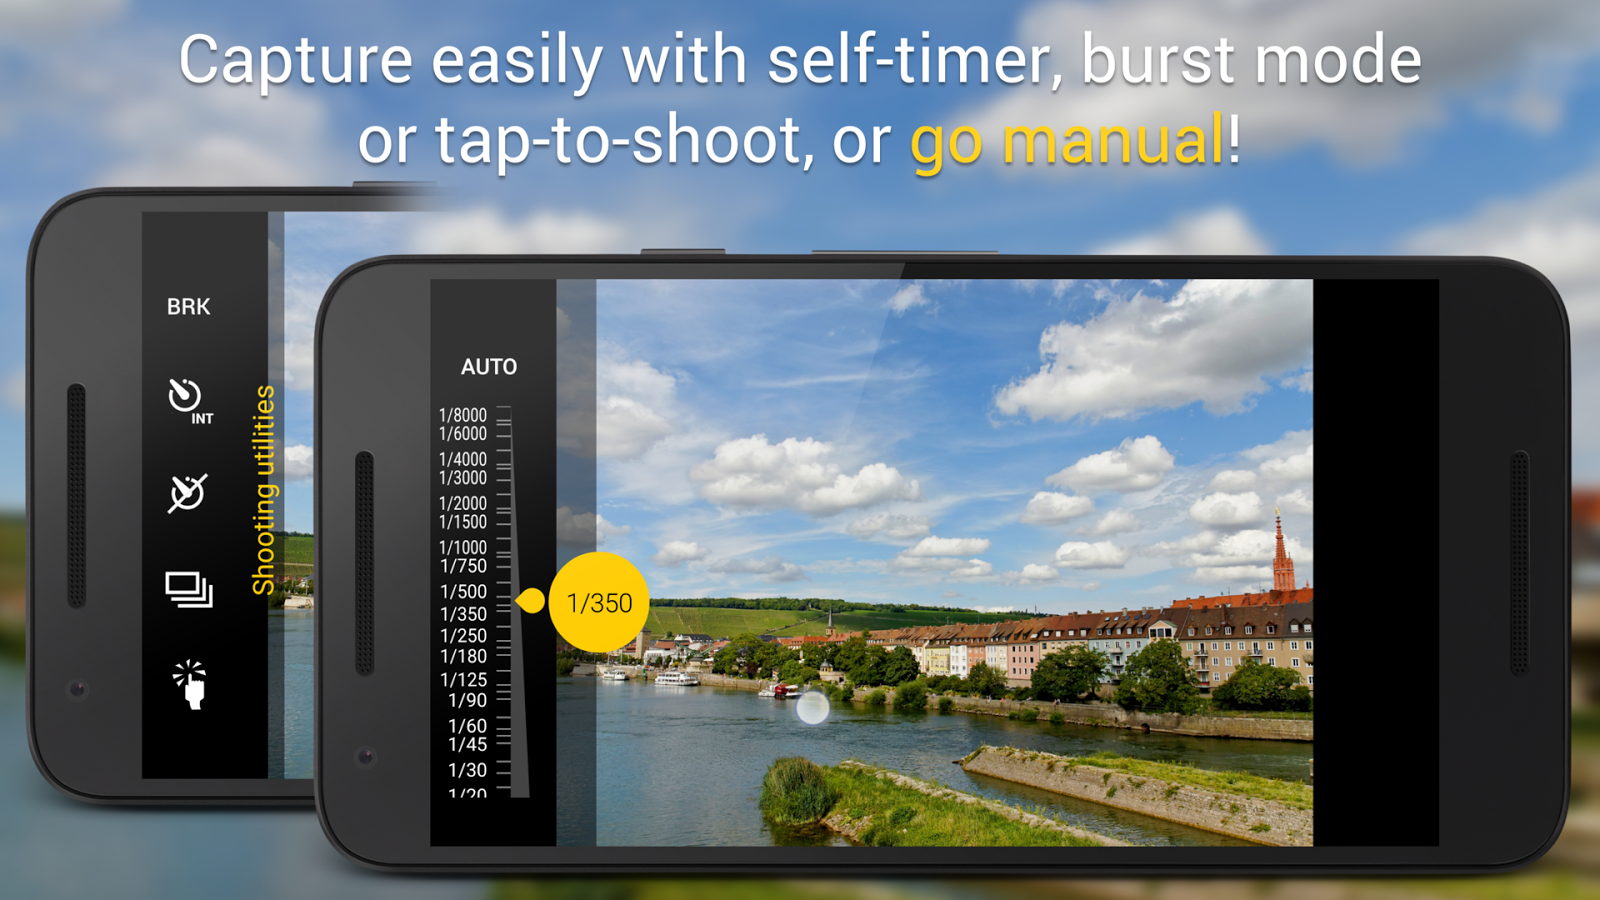 Camera Fv 5 3 31 4 Apk Download Android Photography Apps